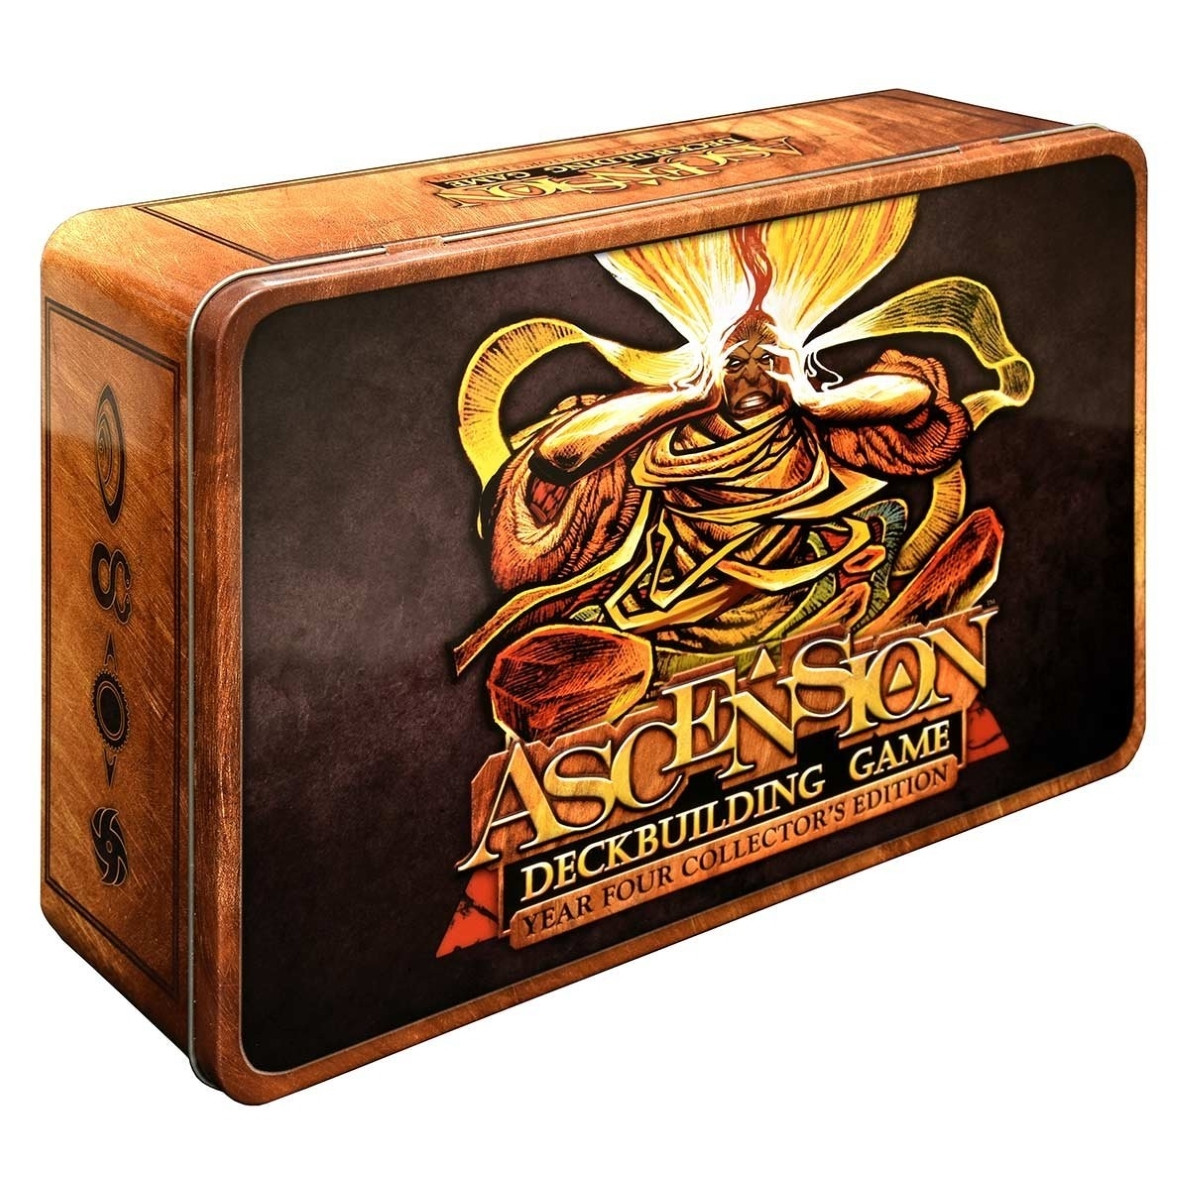 Ultra pro ascension deckbuilding game year four collector s edition